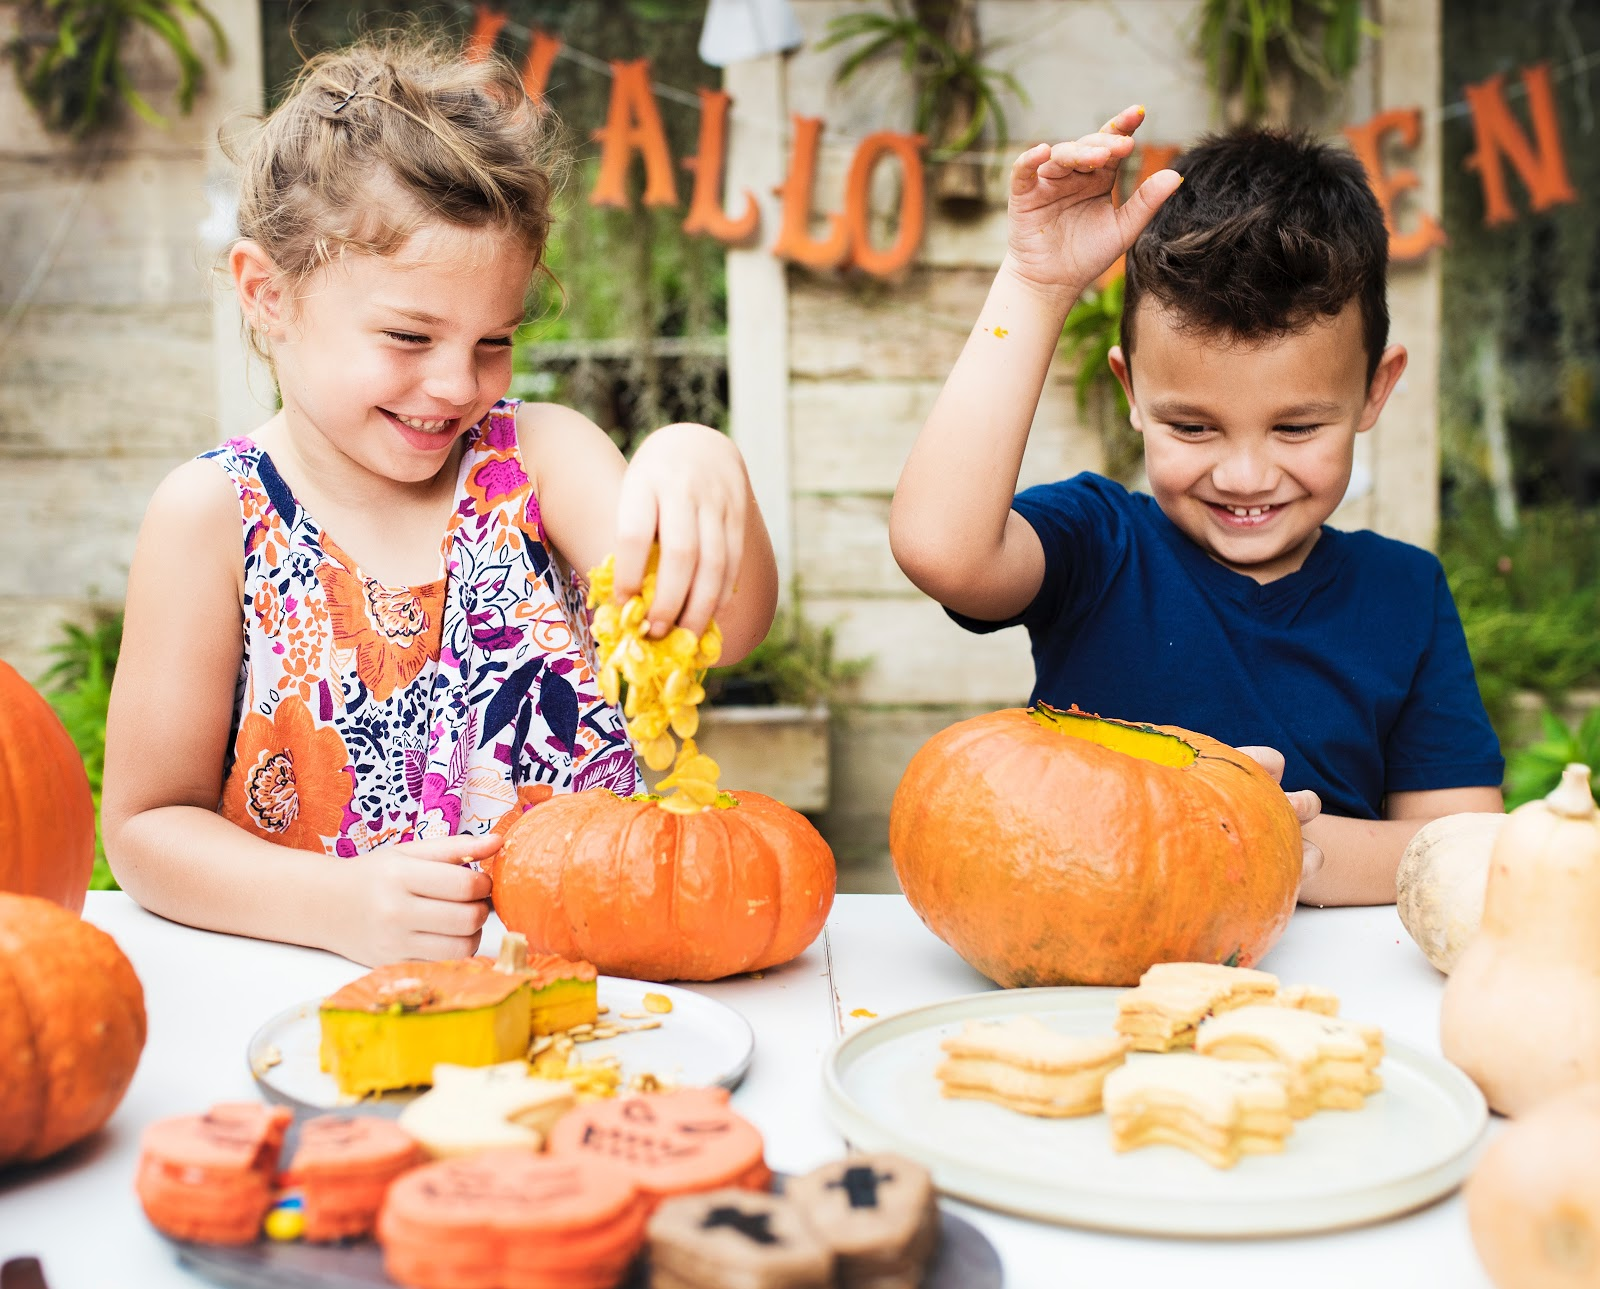 A boy and a girl enjoying a halloween party scoop seeds and pulp out of pumpkins